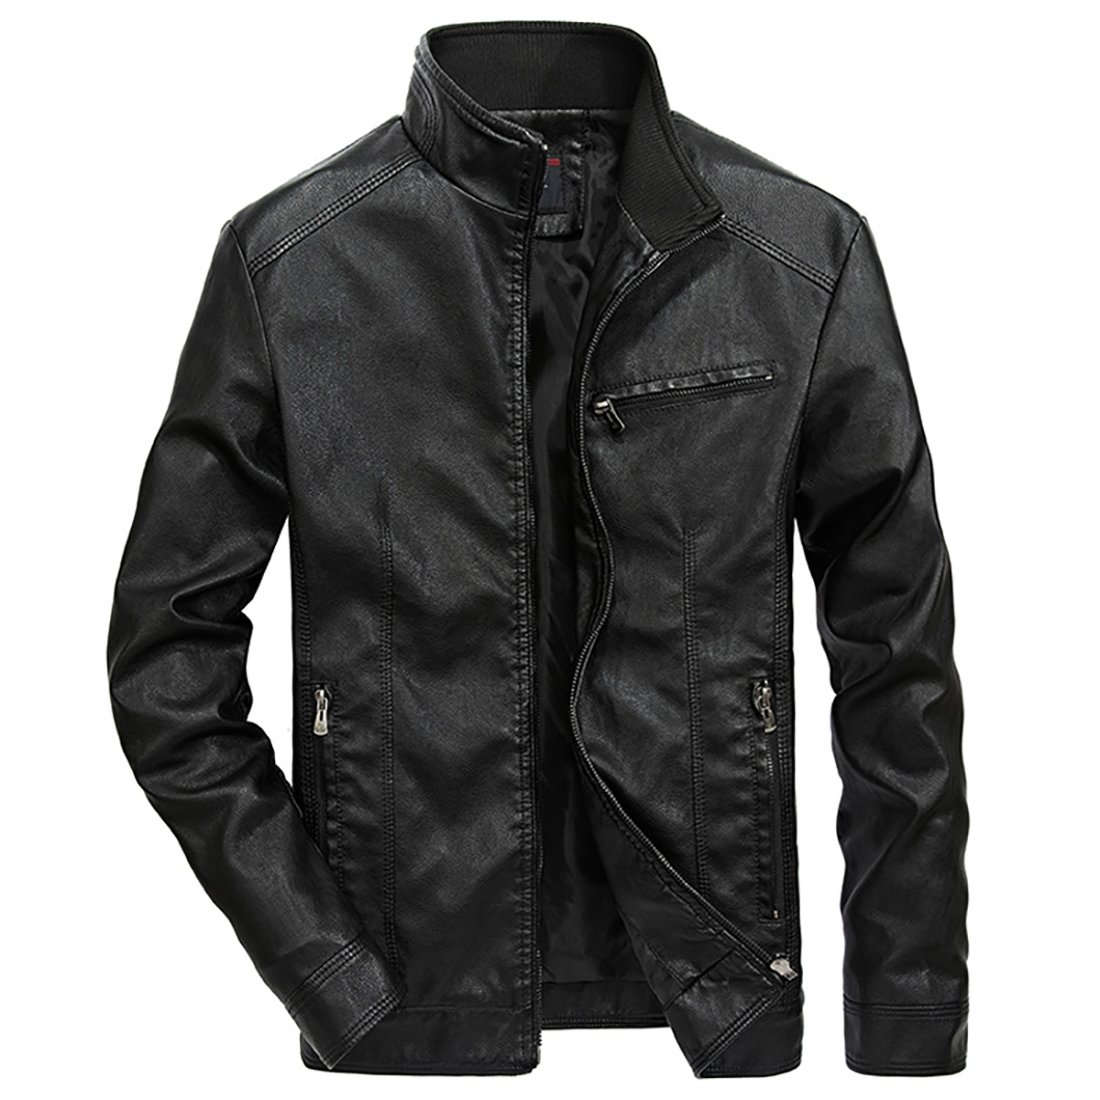 LJYH Mens Stand Collar PU Leather Jacket Faux-Leather Motorcycle Coat